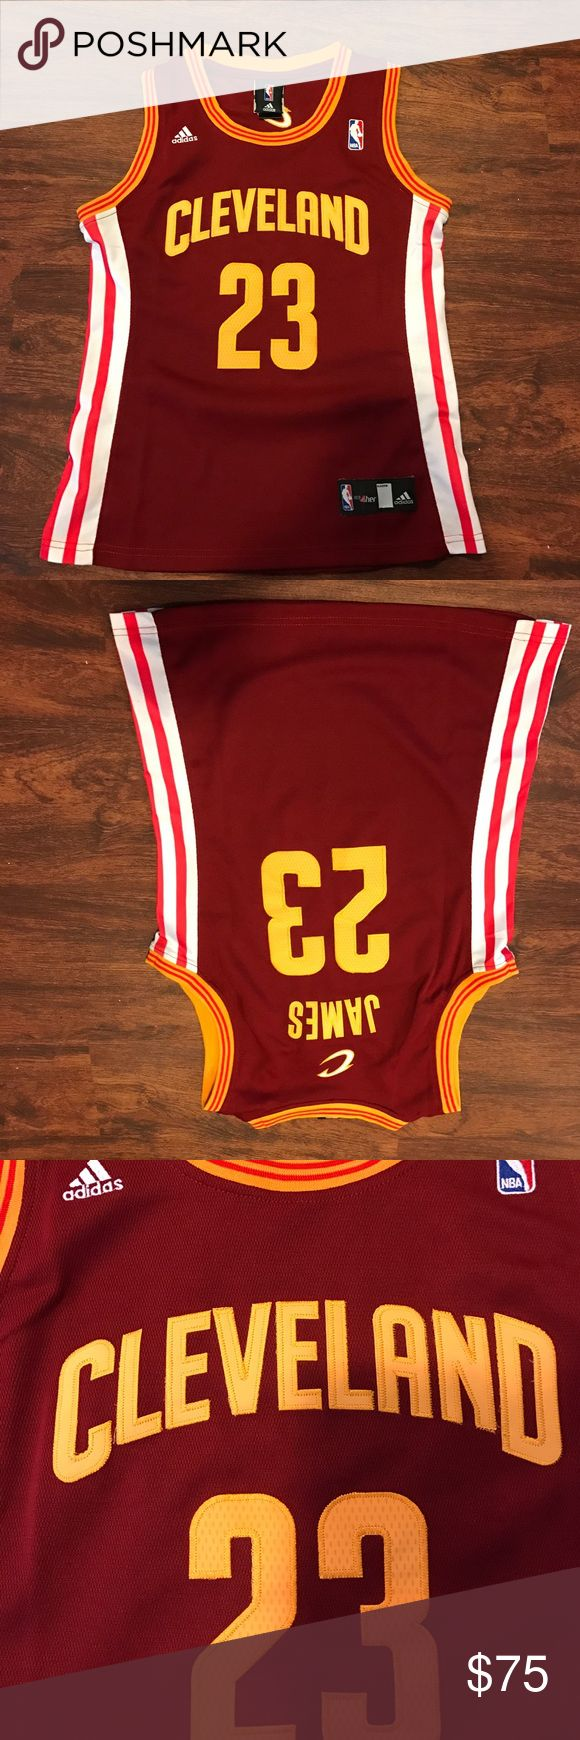 *PRICE DROP* Lebron Cleveland Cavilers 23 Jersey Lebron James Cleveland Cavs 23 jersey - purchased from another posher did not realize all patches were hand sewed on, still very nice!!! Worn once, great condition. (Women's Medium) Tops